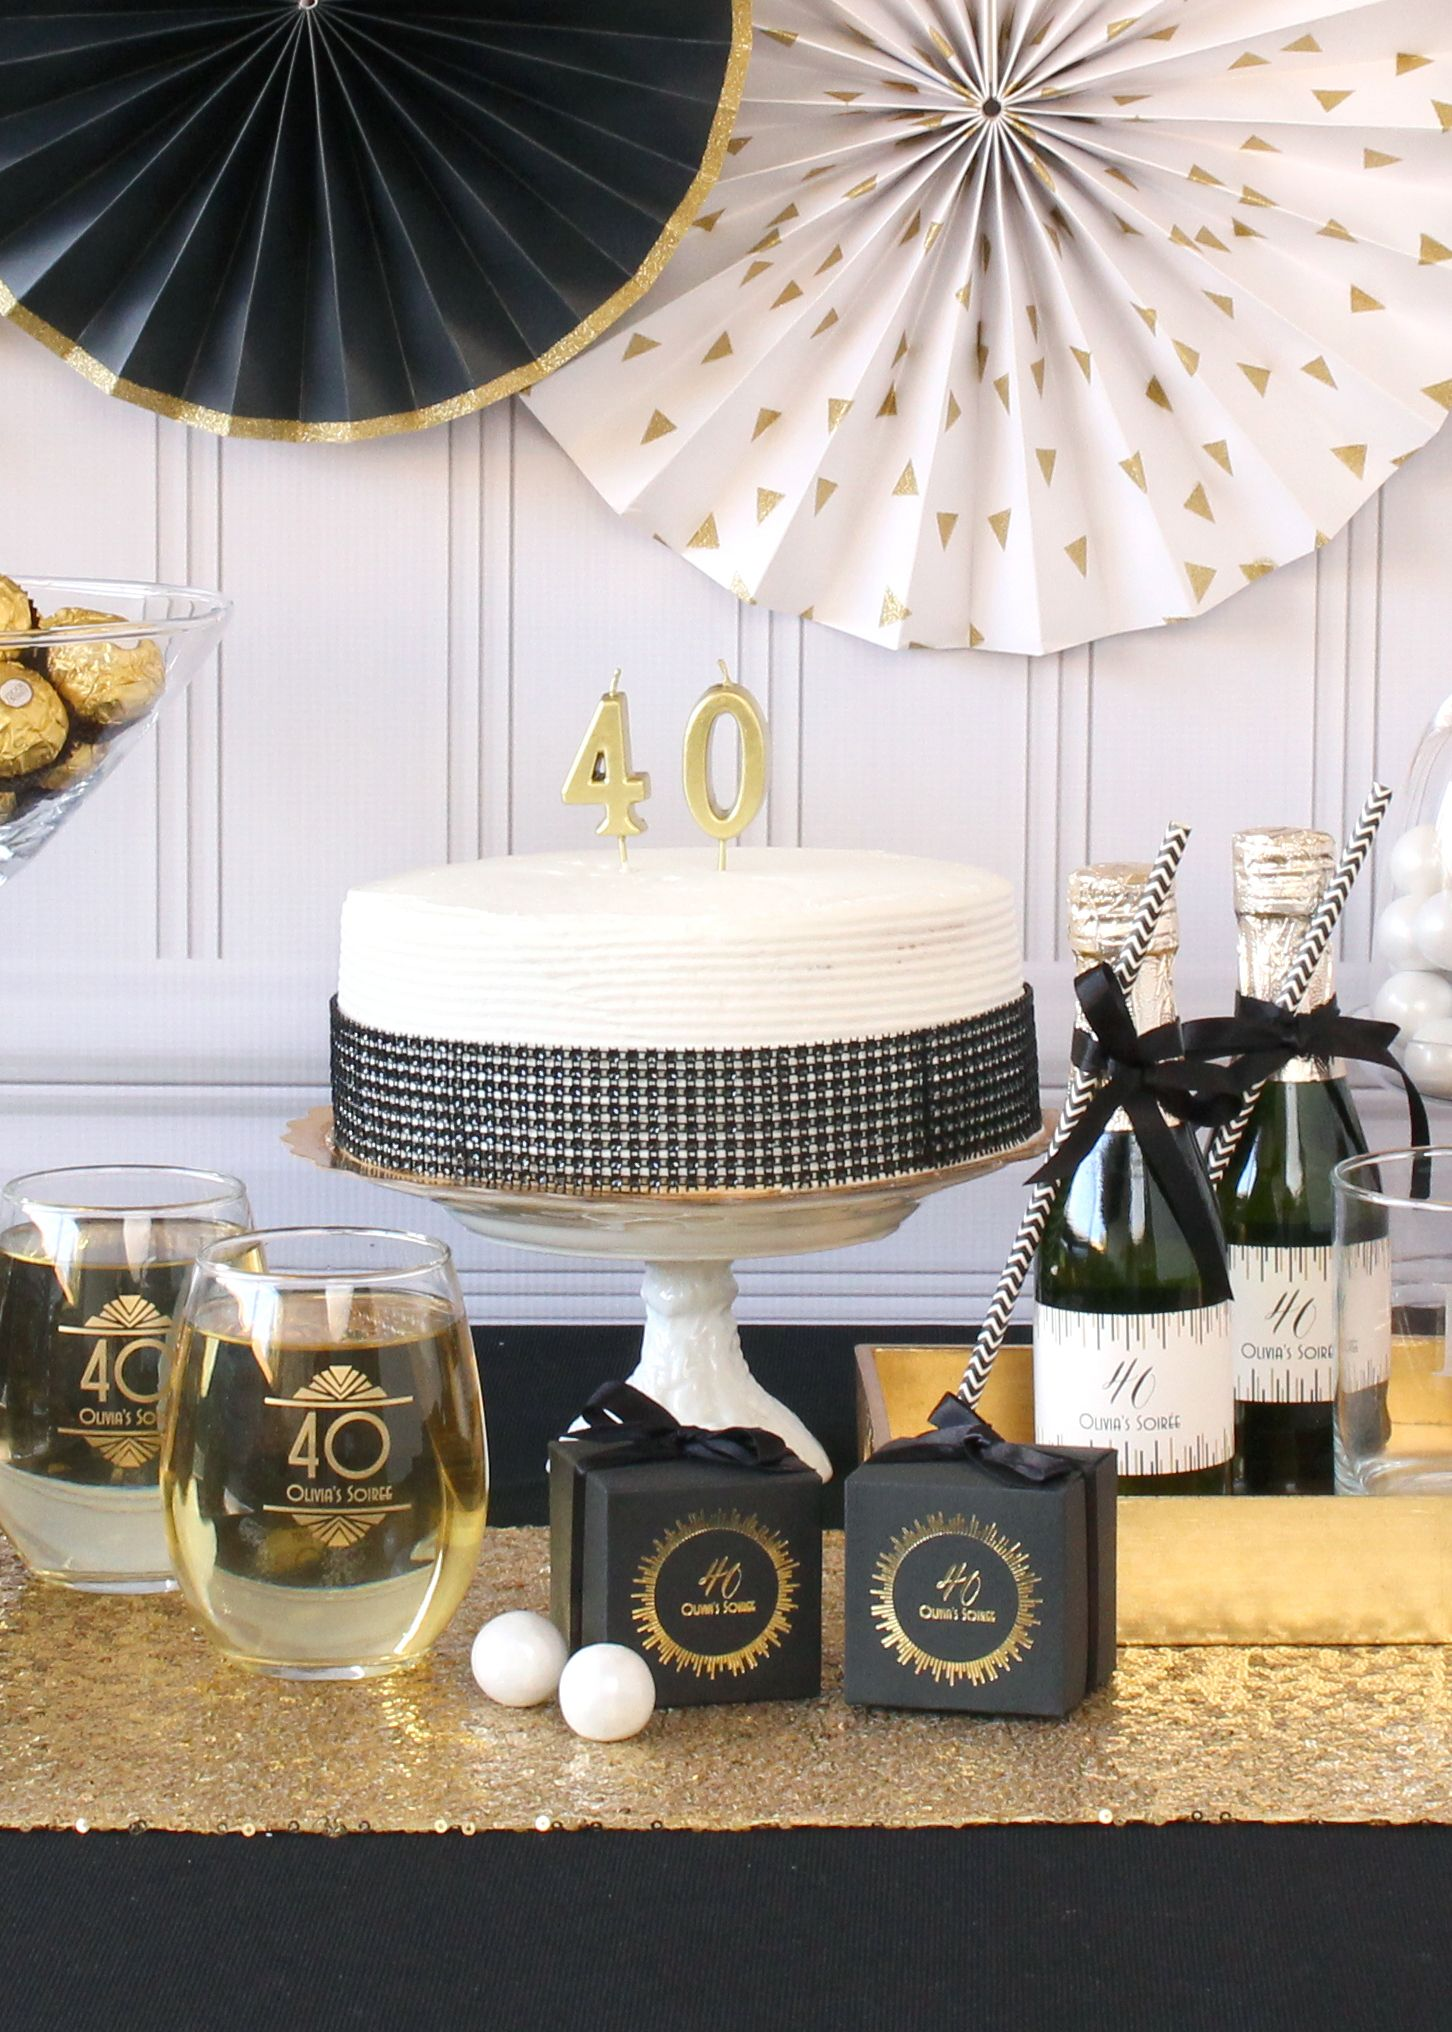 Celebrate The Big Birthday With An Elegant Party Shop The